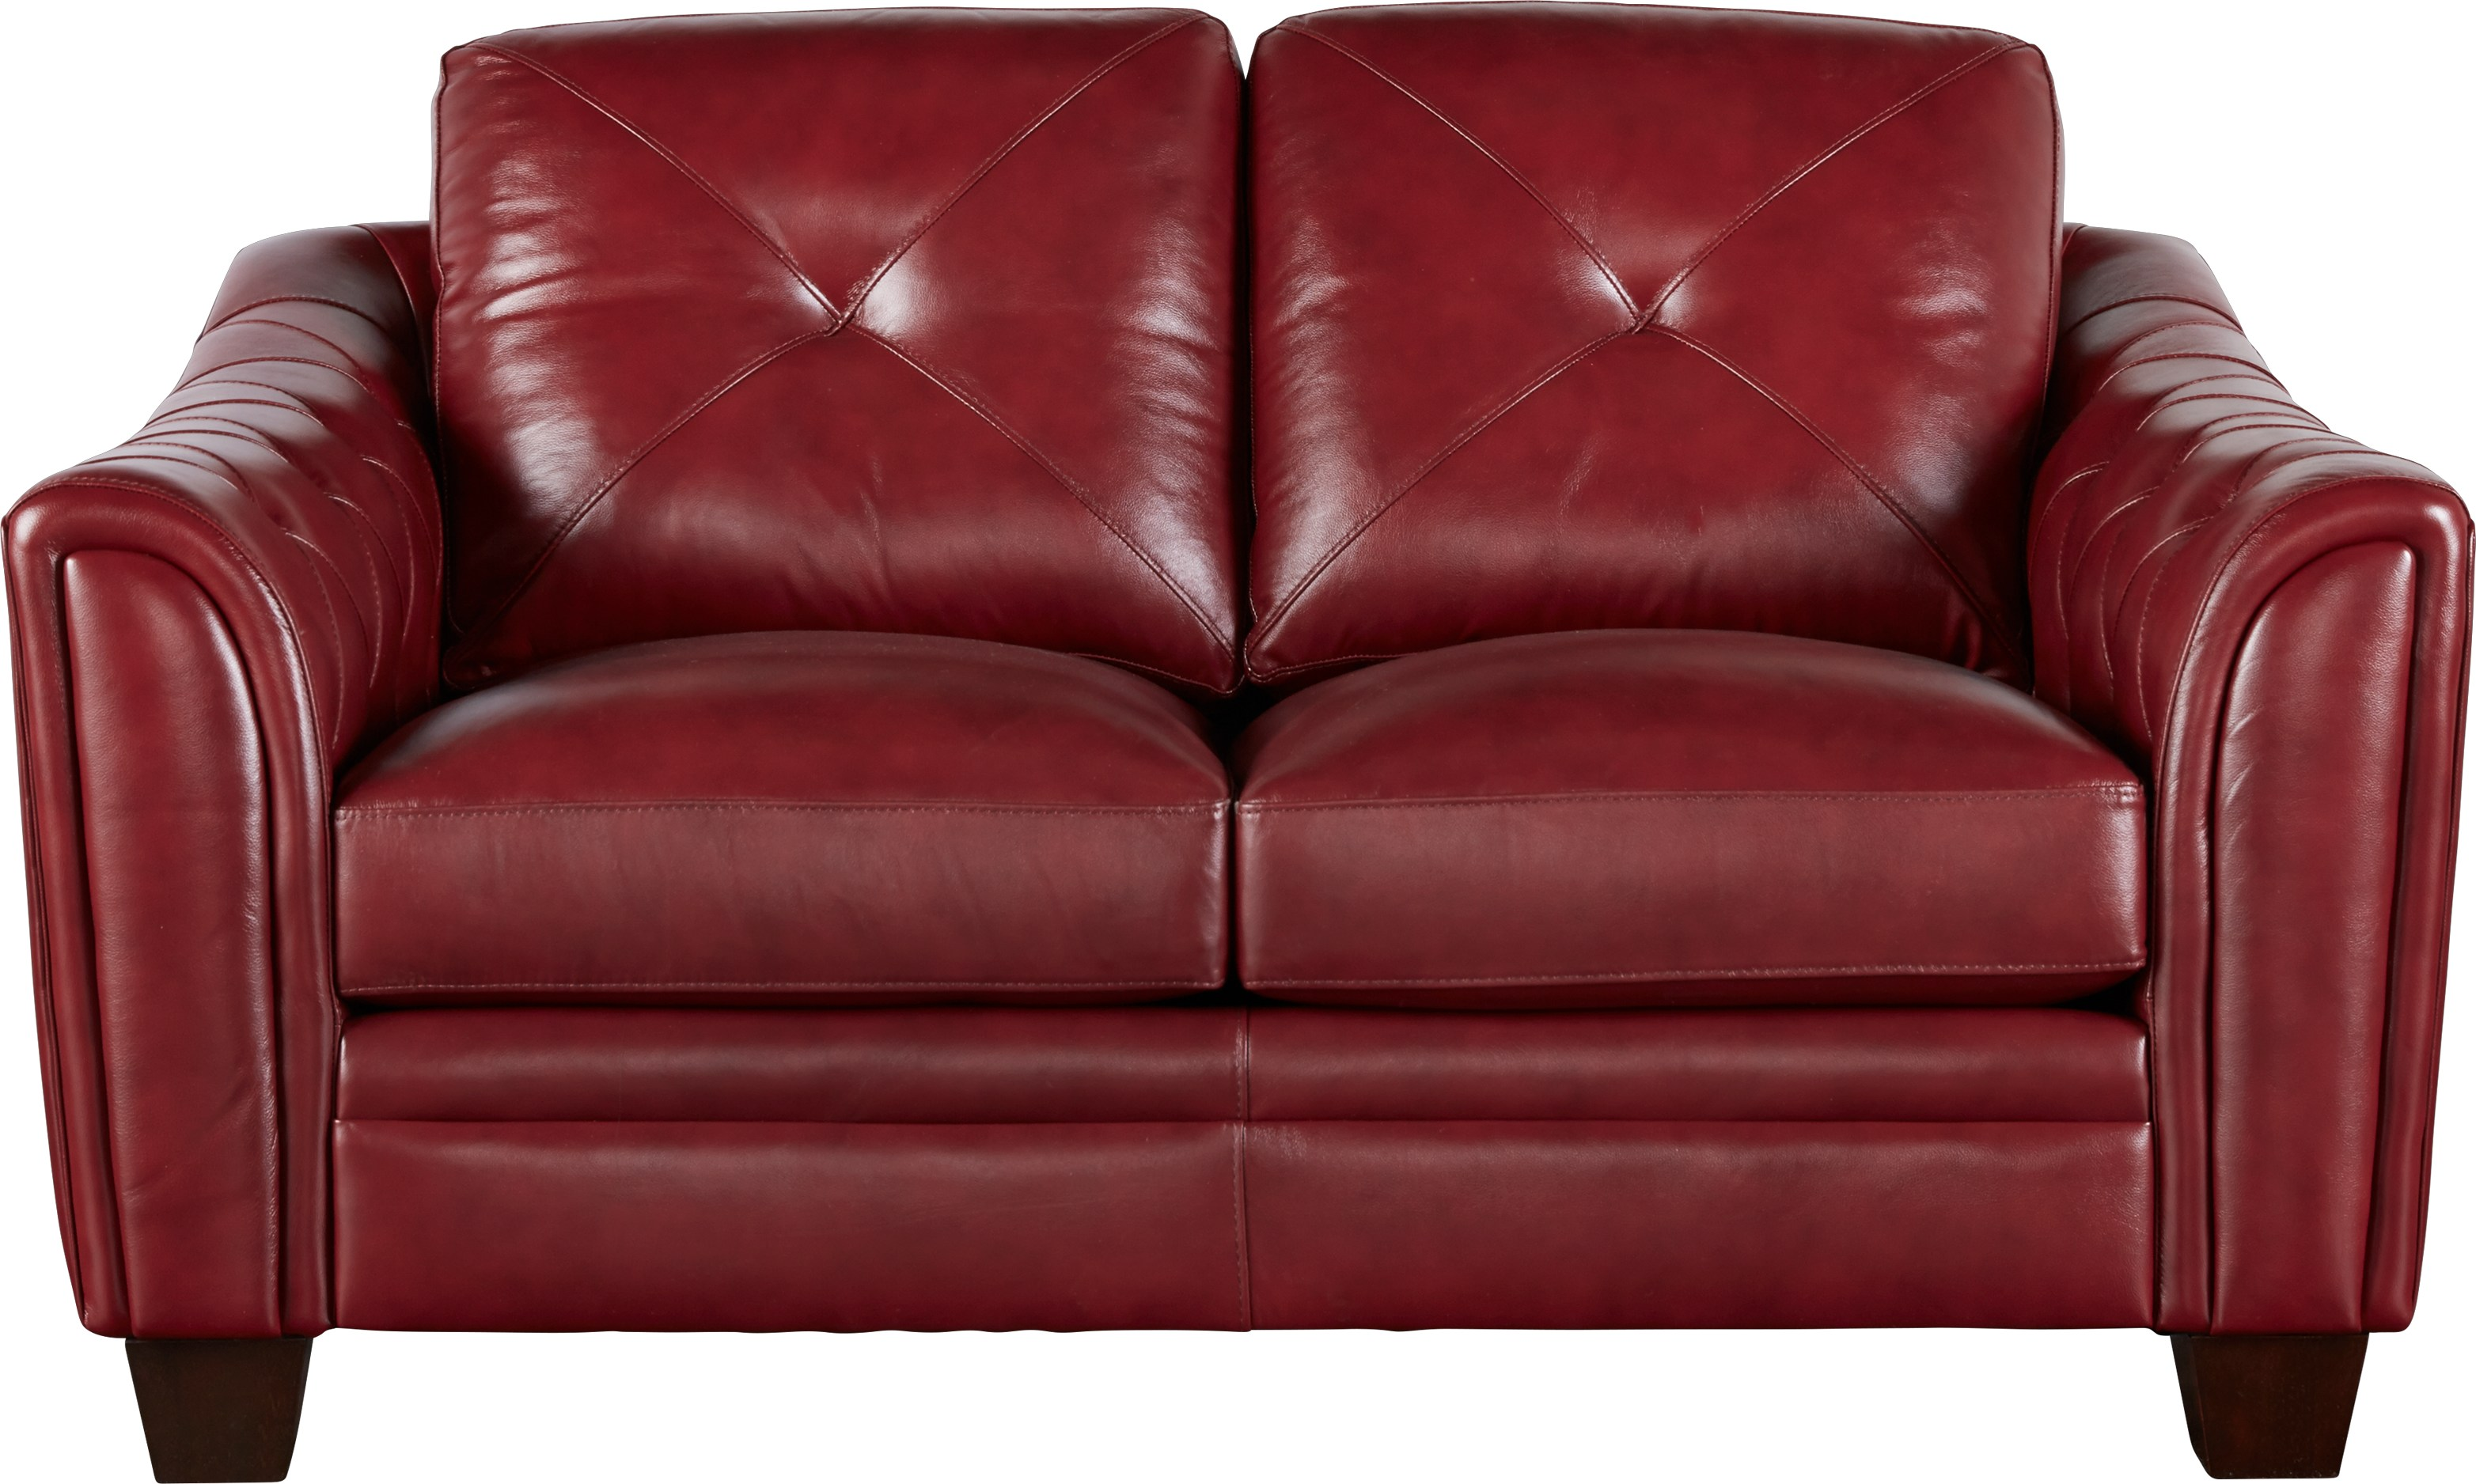 Cindy Crawford Home Marcella Red Leather Loveseat - Leather Loveseats (Red)